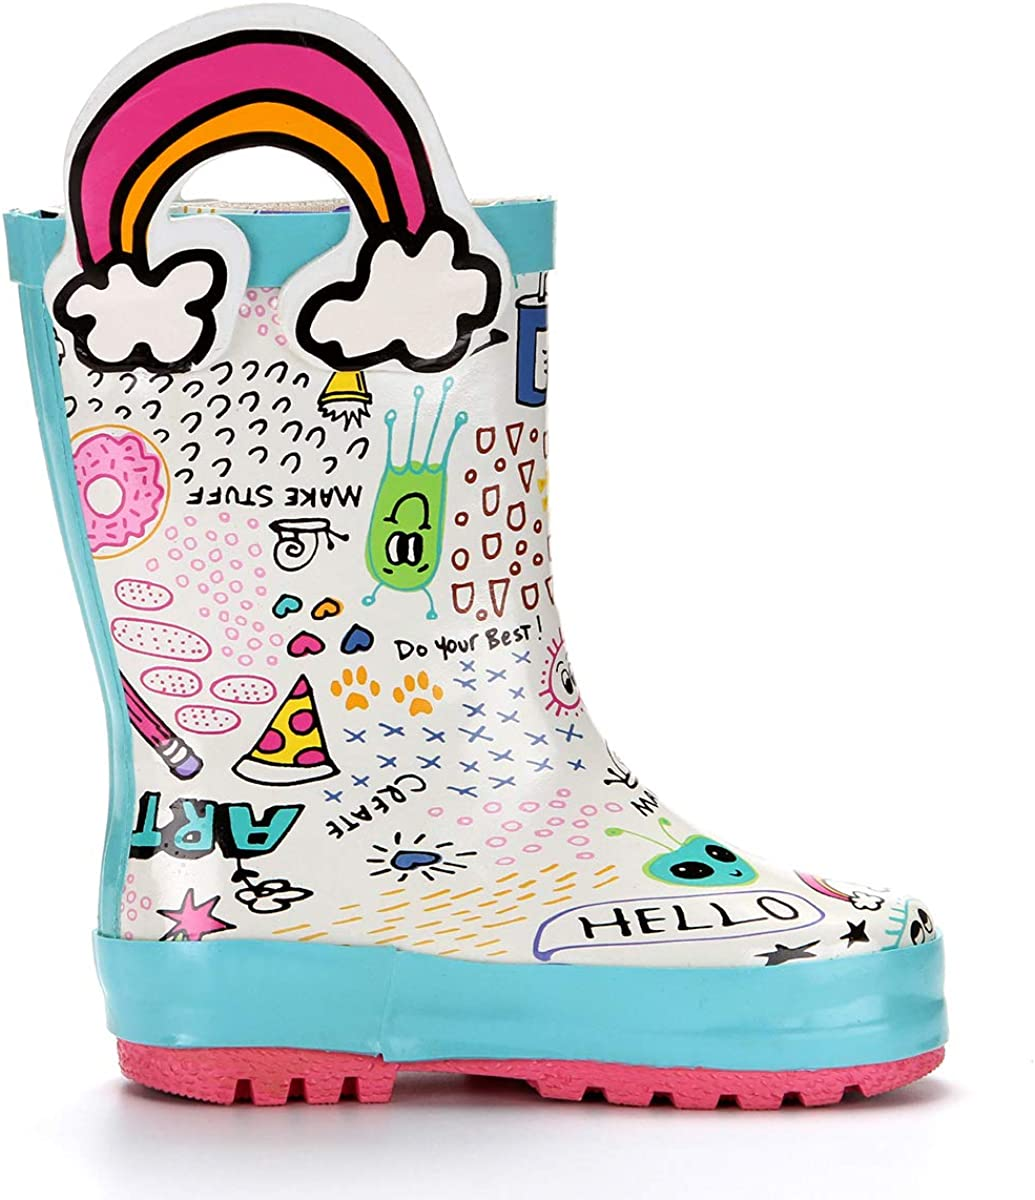 VAMV Printed Kids Toddler Rain Boots for Girls and Boys